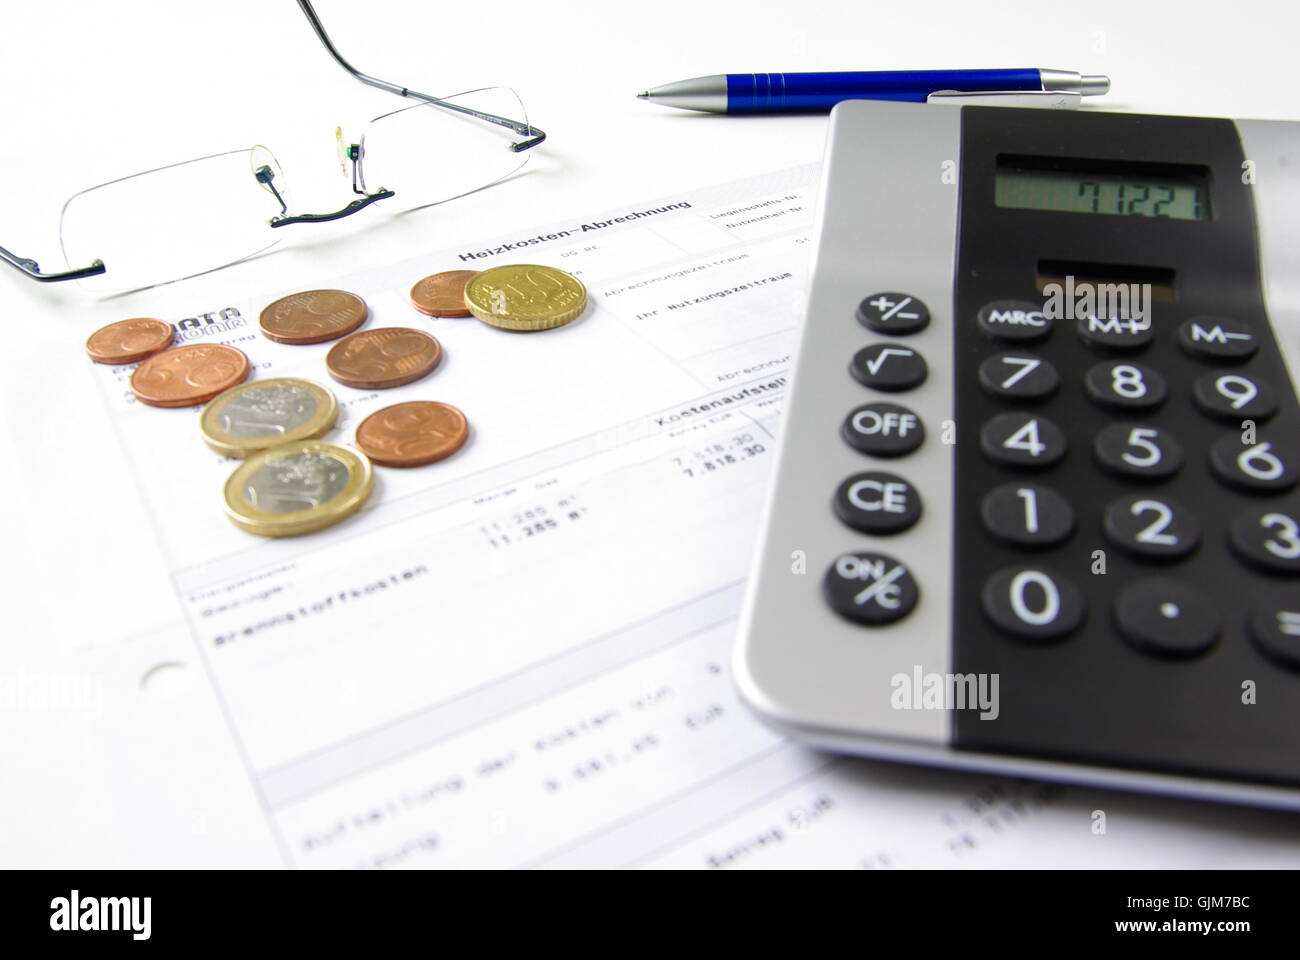 heating rent costs incidental to sth. - Stock Image